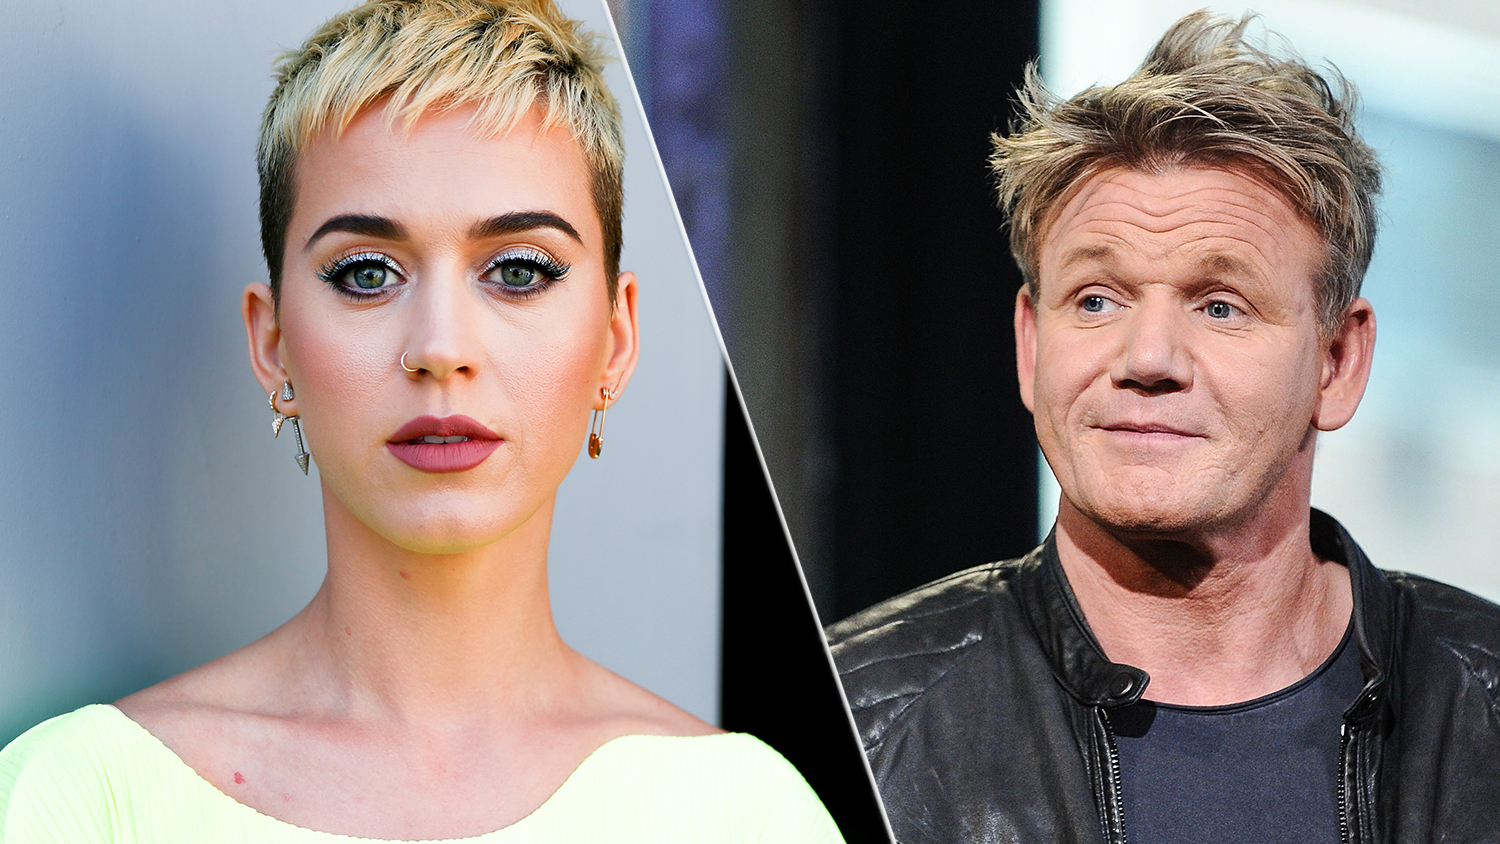 Katy Perry Tried to Cook with Gordon Ramsay and It Didn't Go Too Well